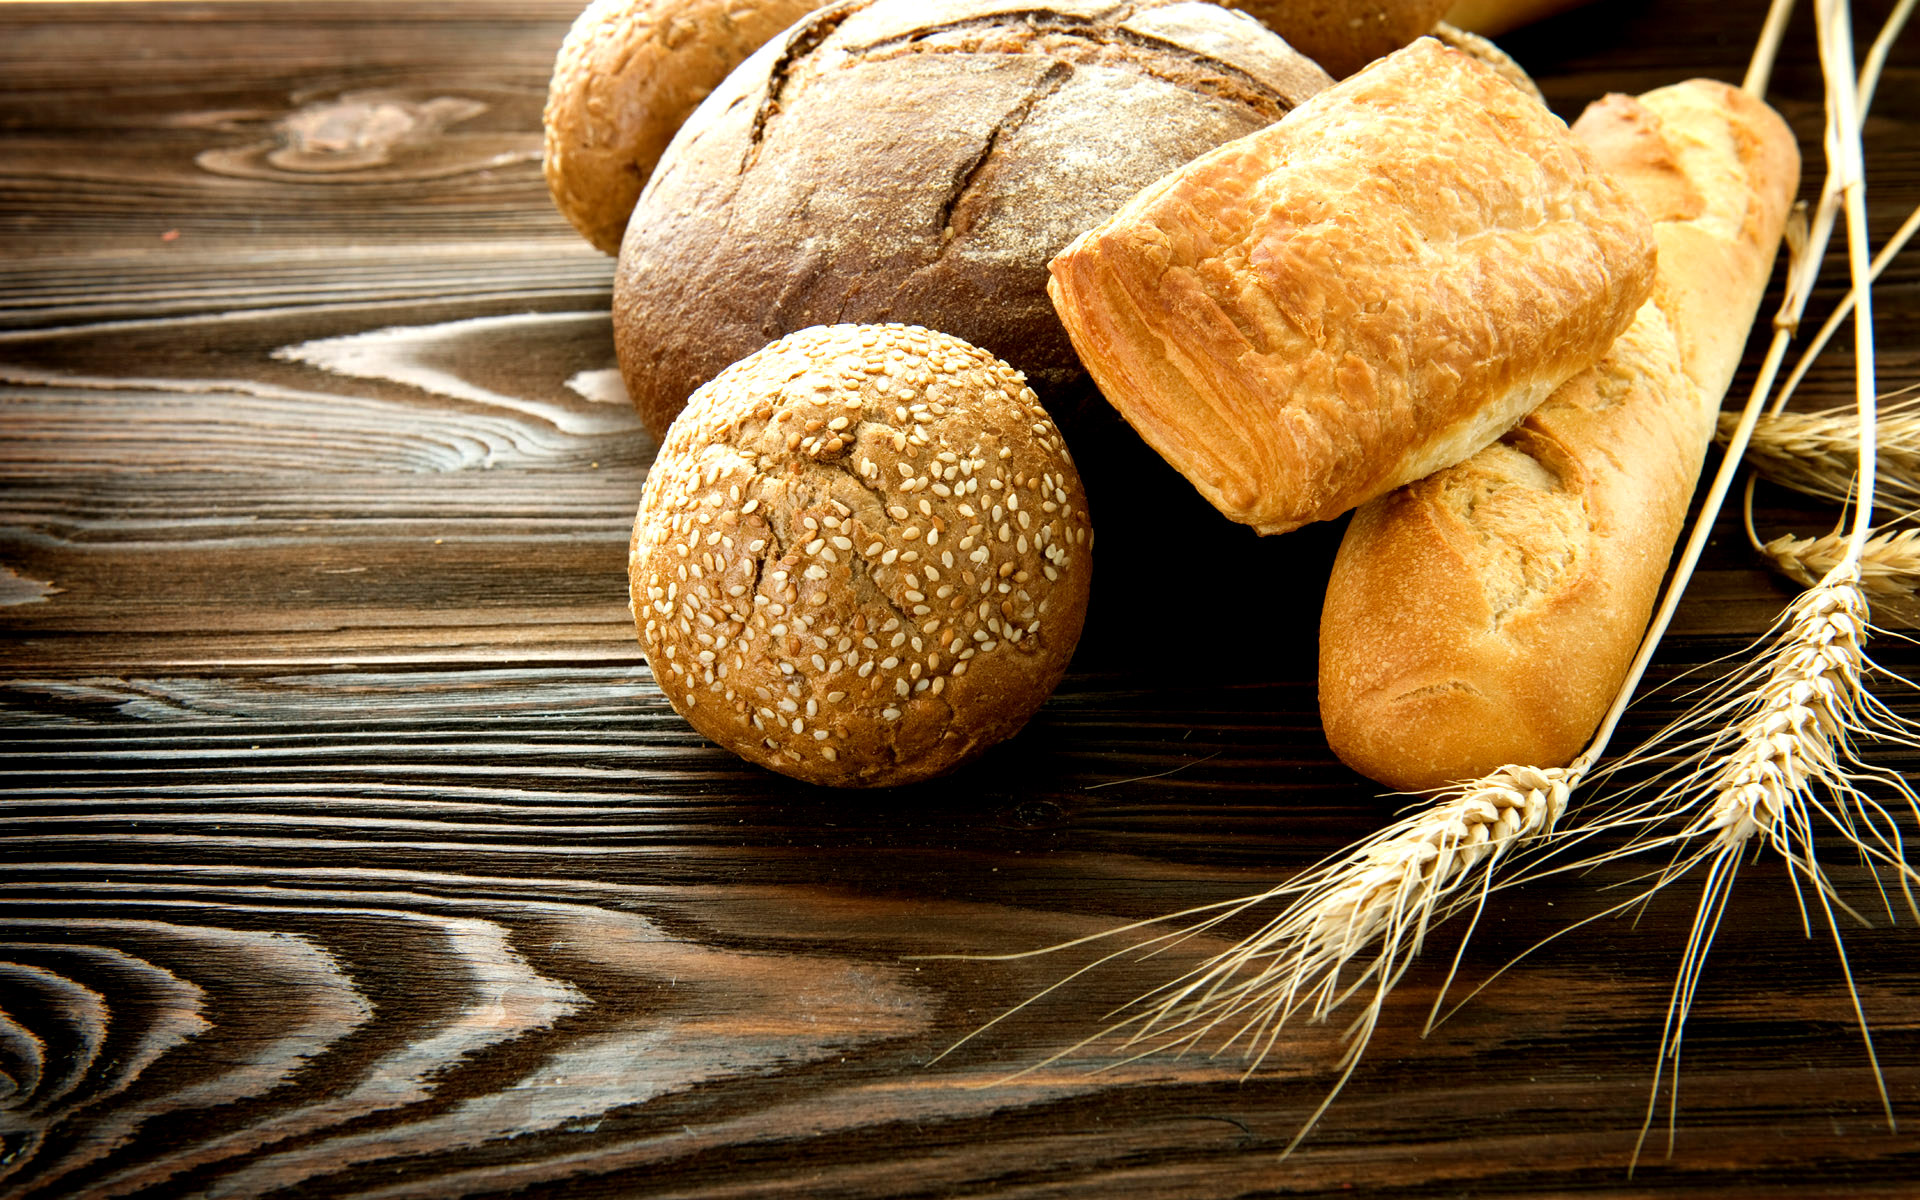 gluten Gluten is a protein found in certain grains, like wheat, barley, and rye some people need to avoid it, but should you let's dig into the truth.